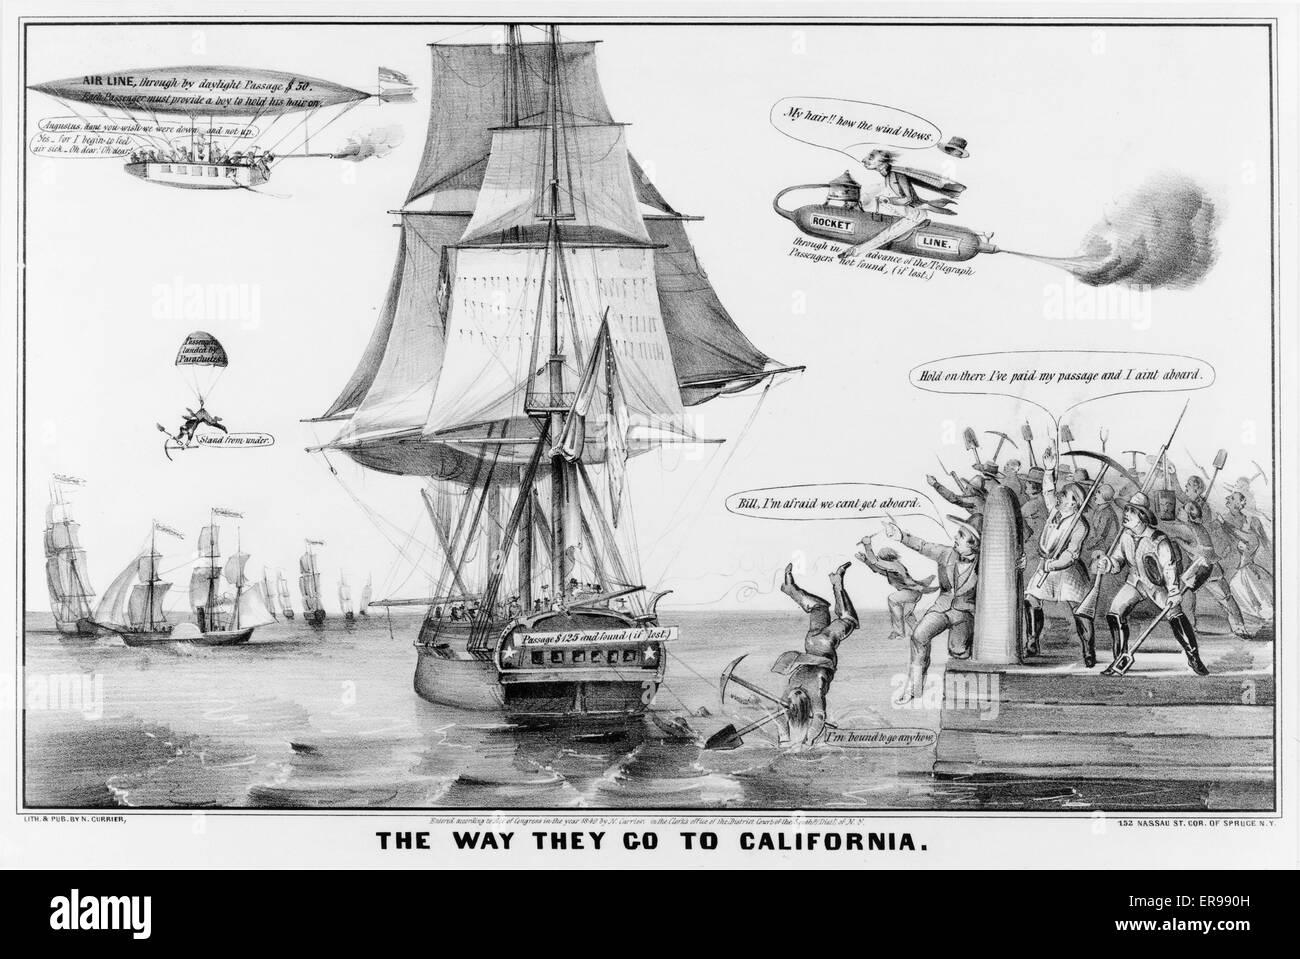 the way they go to california gold rush cartoon showing